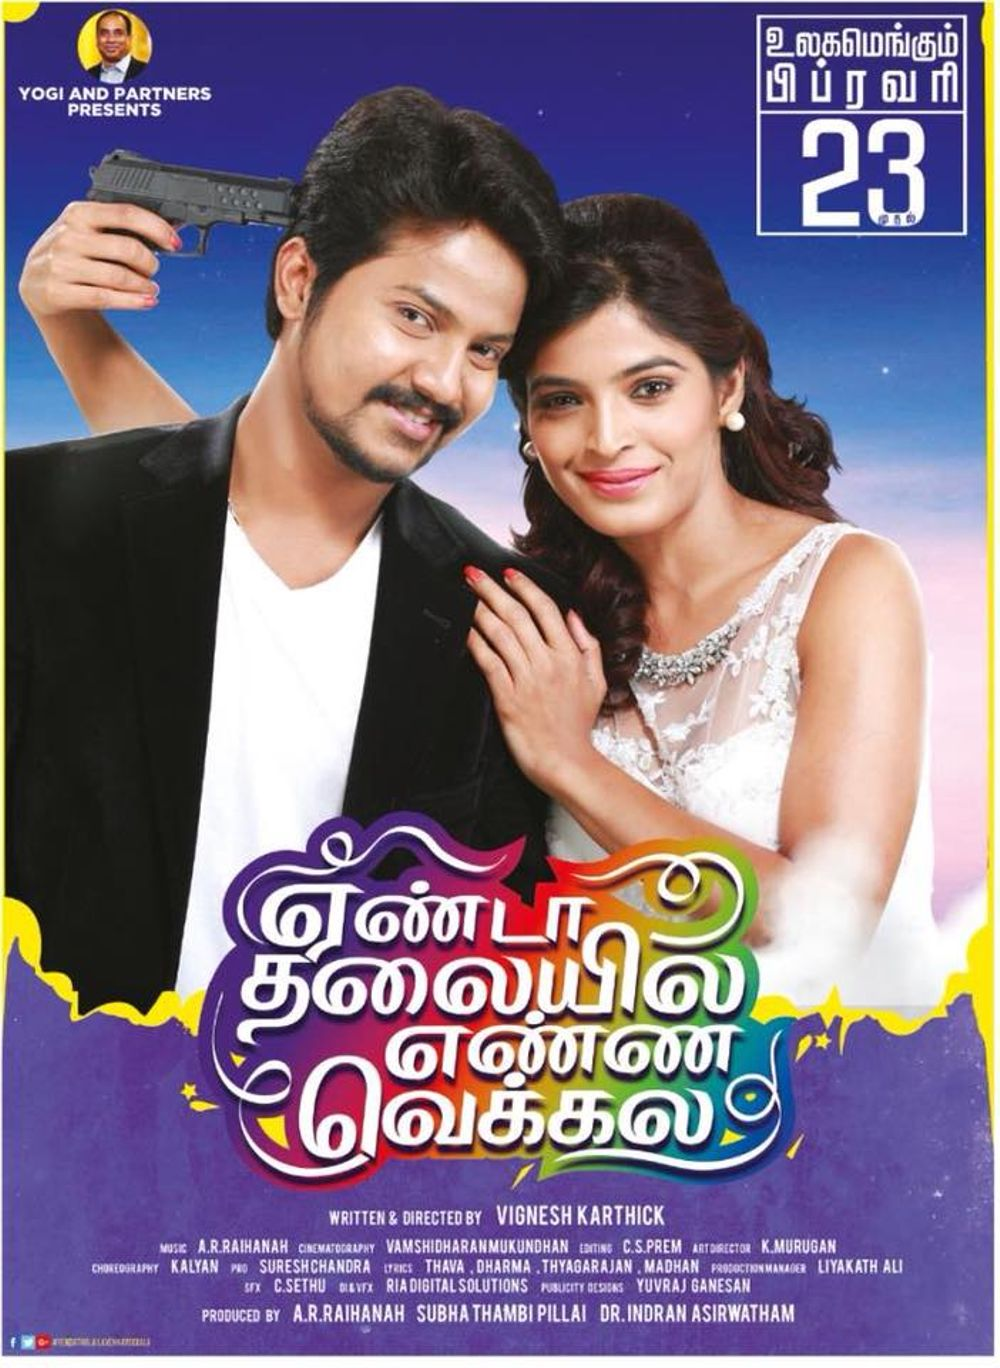 Yenda Thalaila Yenna Vekkala Movie Review Tamil Movie Review